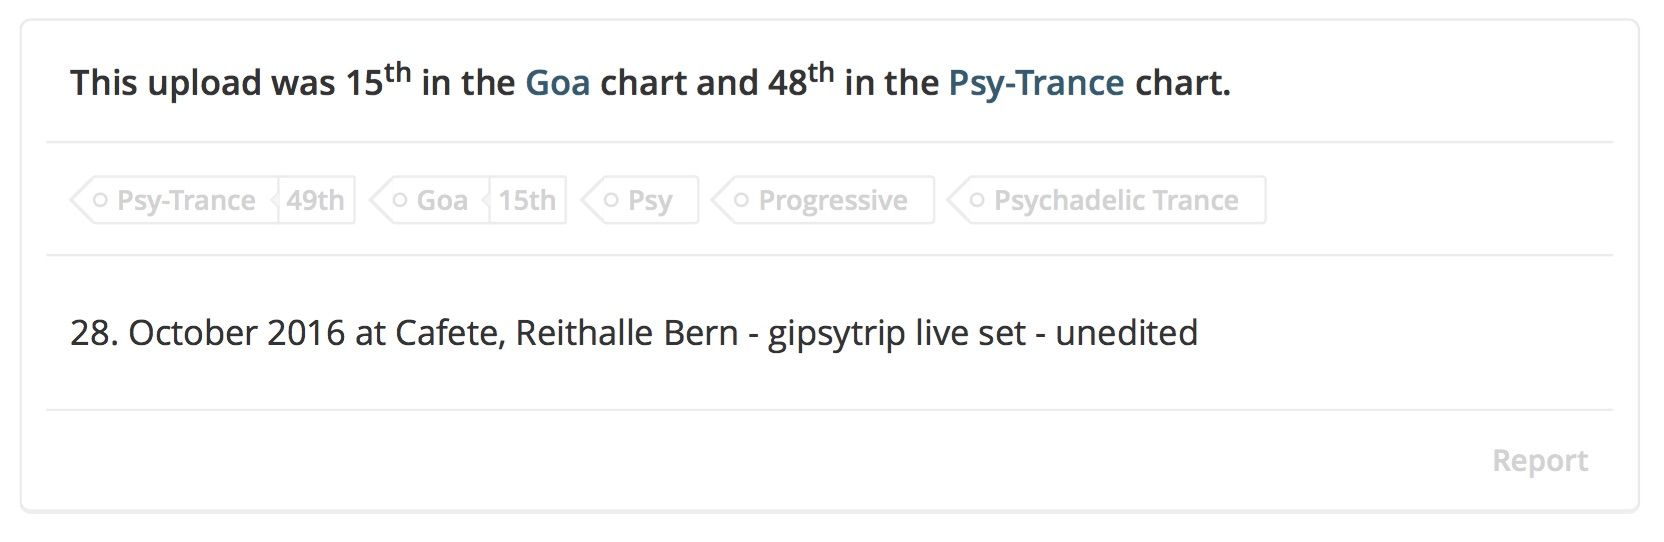 161028_48th-psy-trance-chart_psy-night-cafete